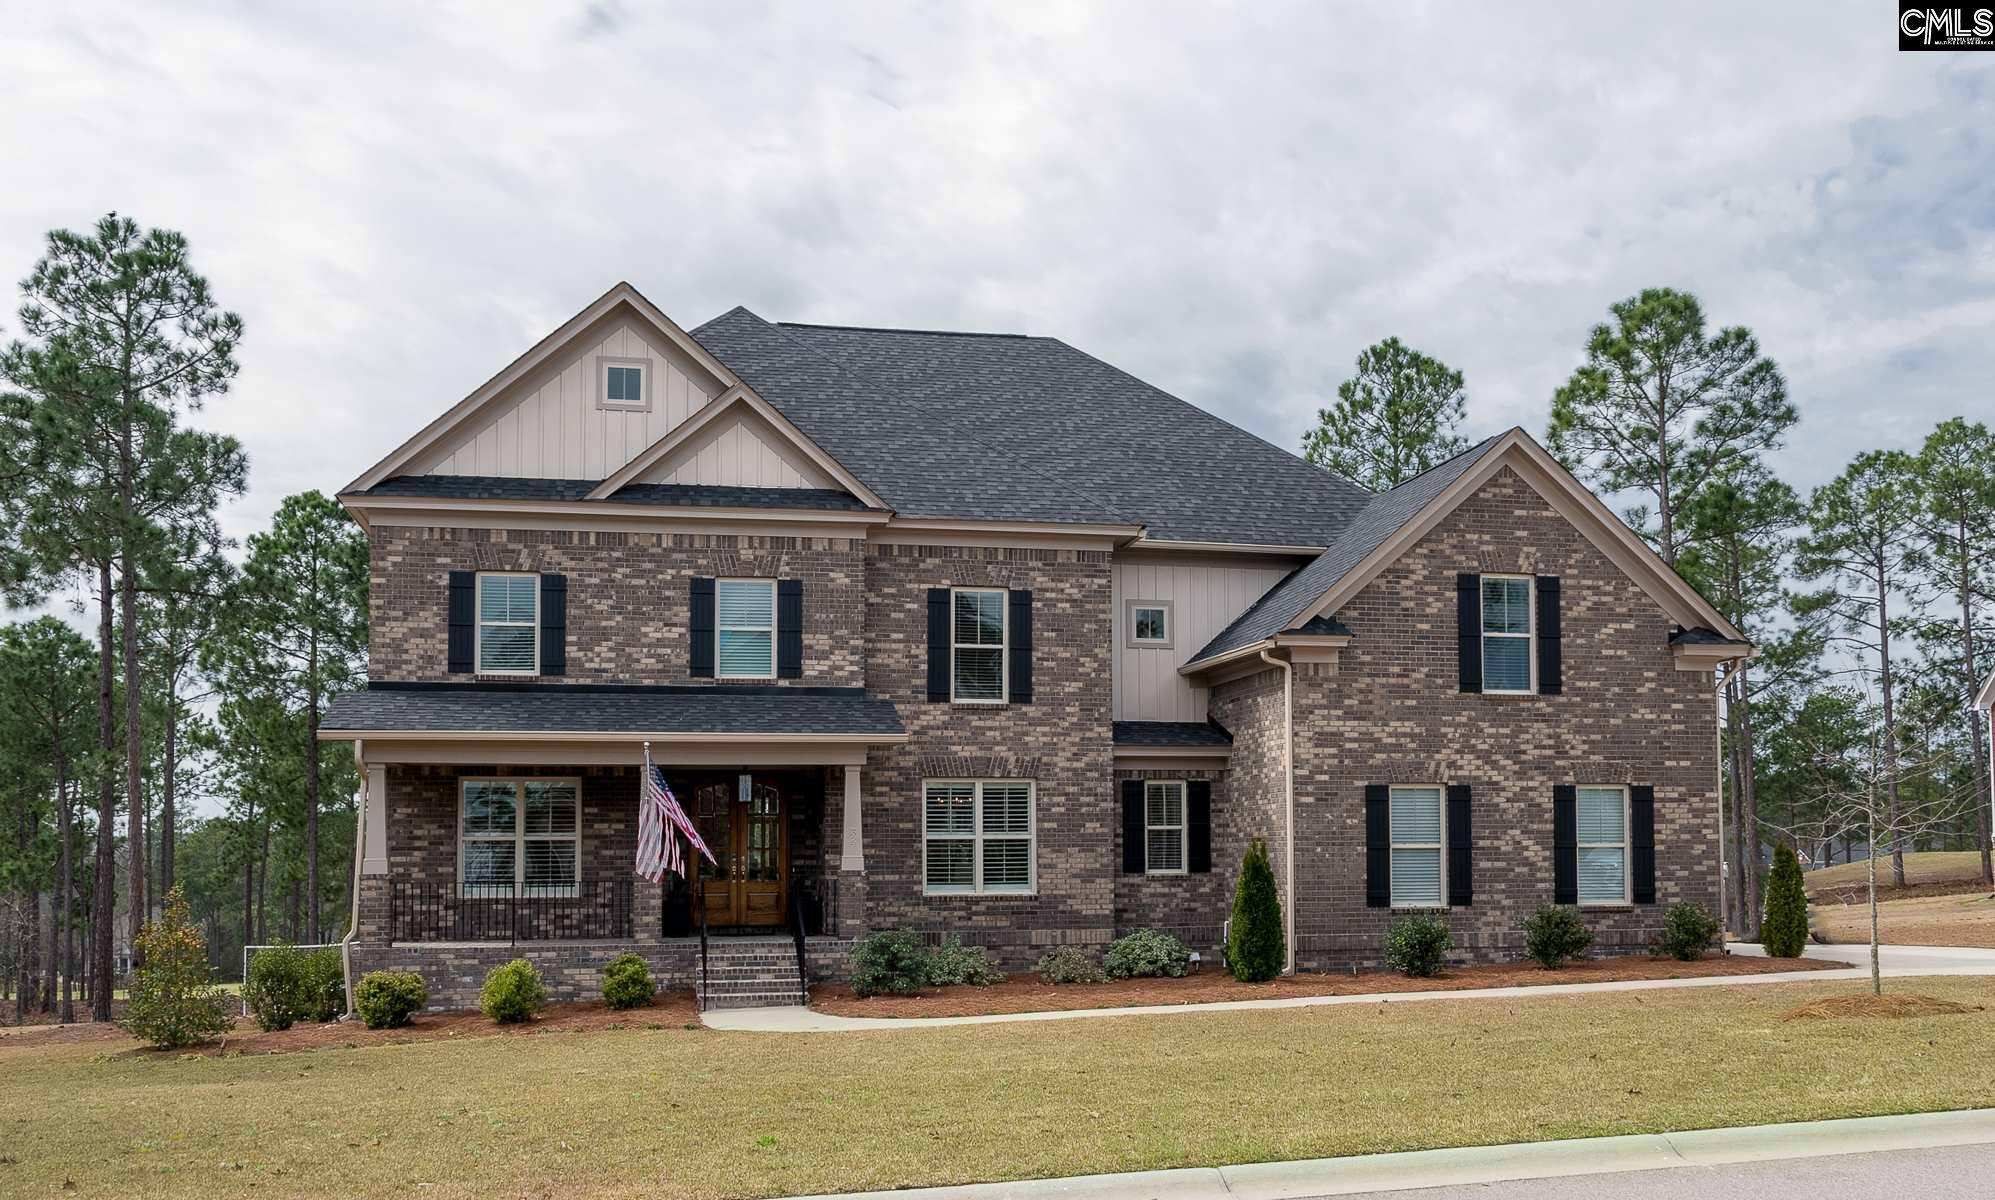 327 Bluestem Columbia, SC 29045-2103